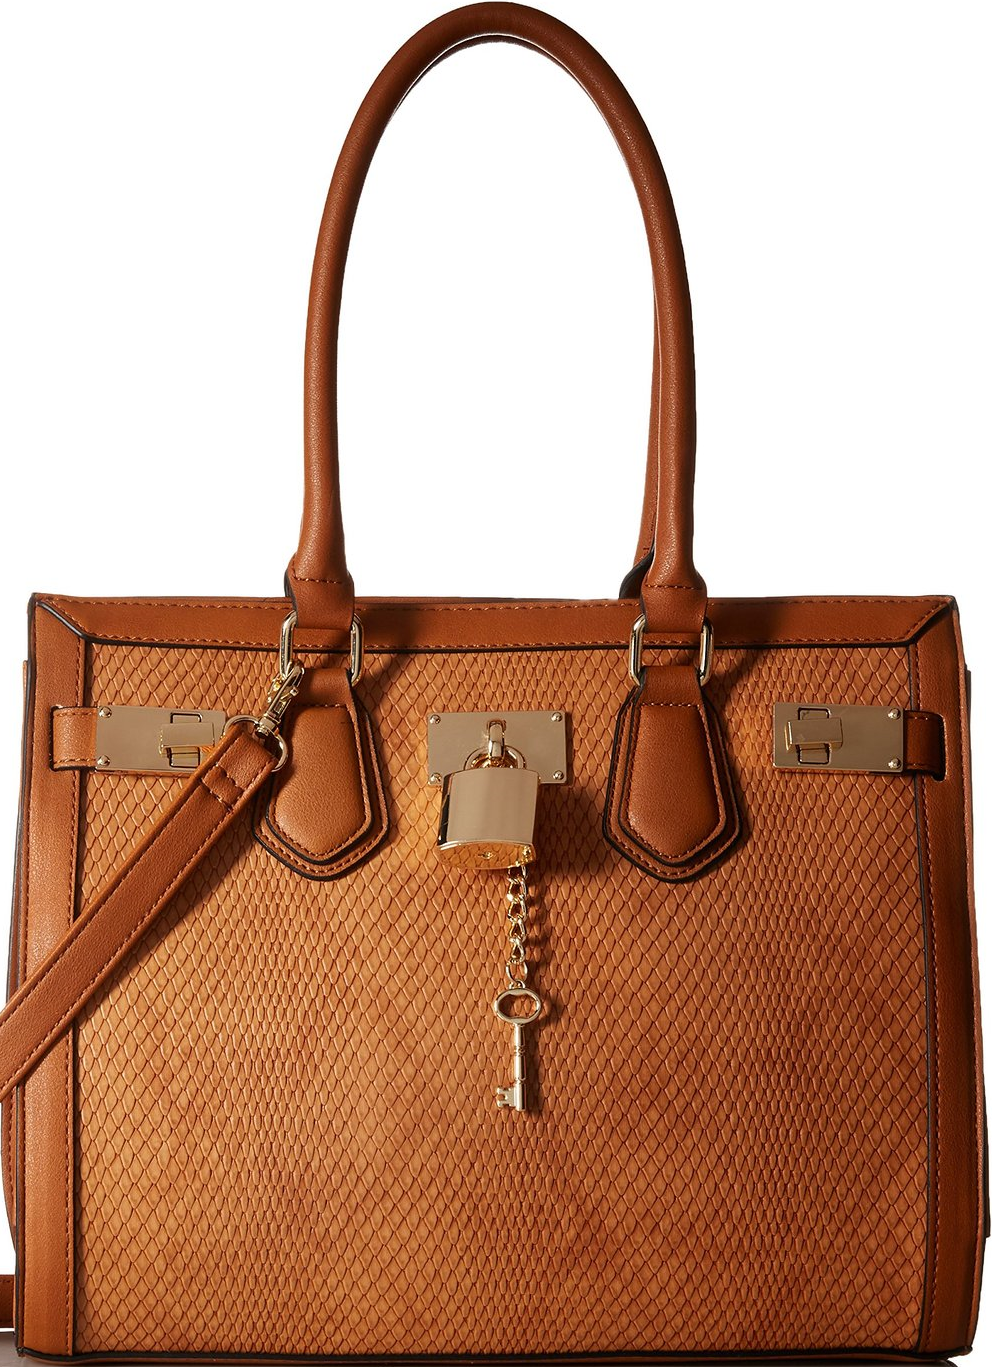 673ade715c Aldo Cognac Gilliam Tote Bag | lookin good... | Bags, Tote handbags ...